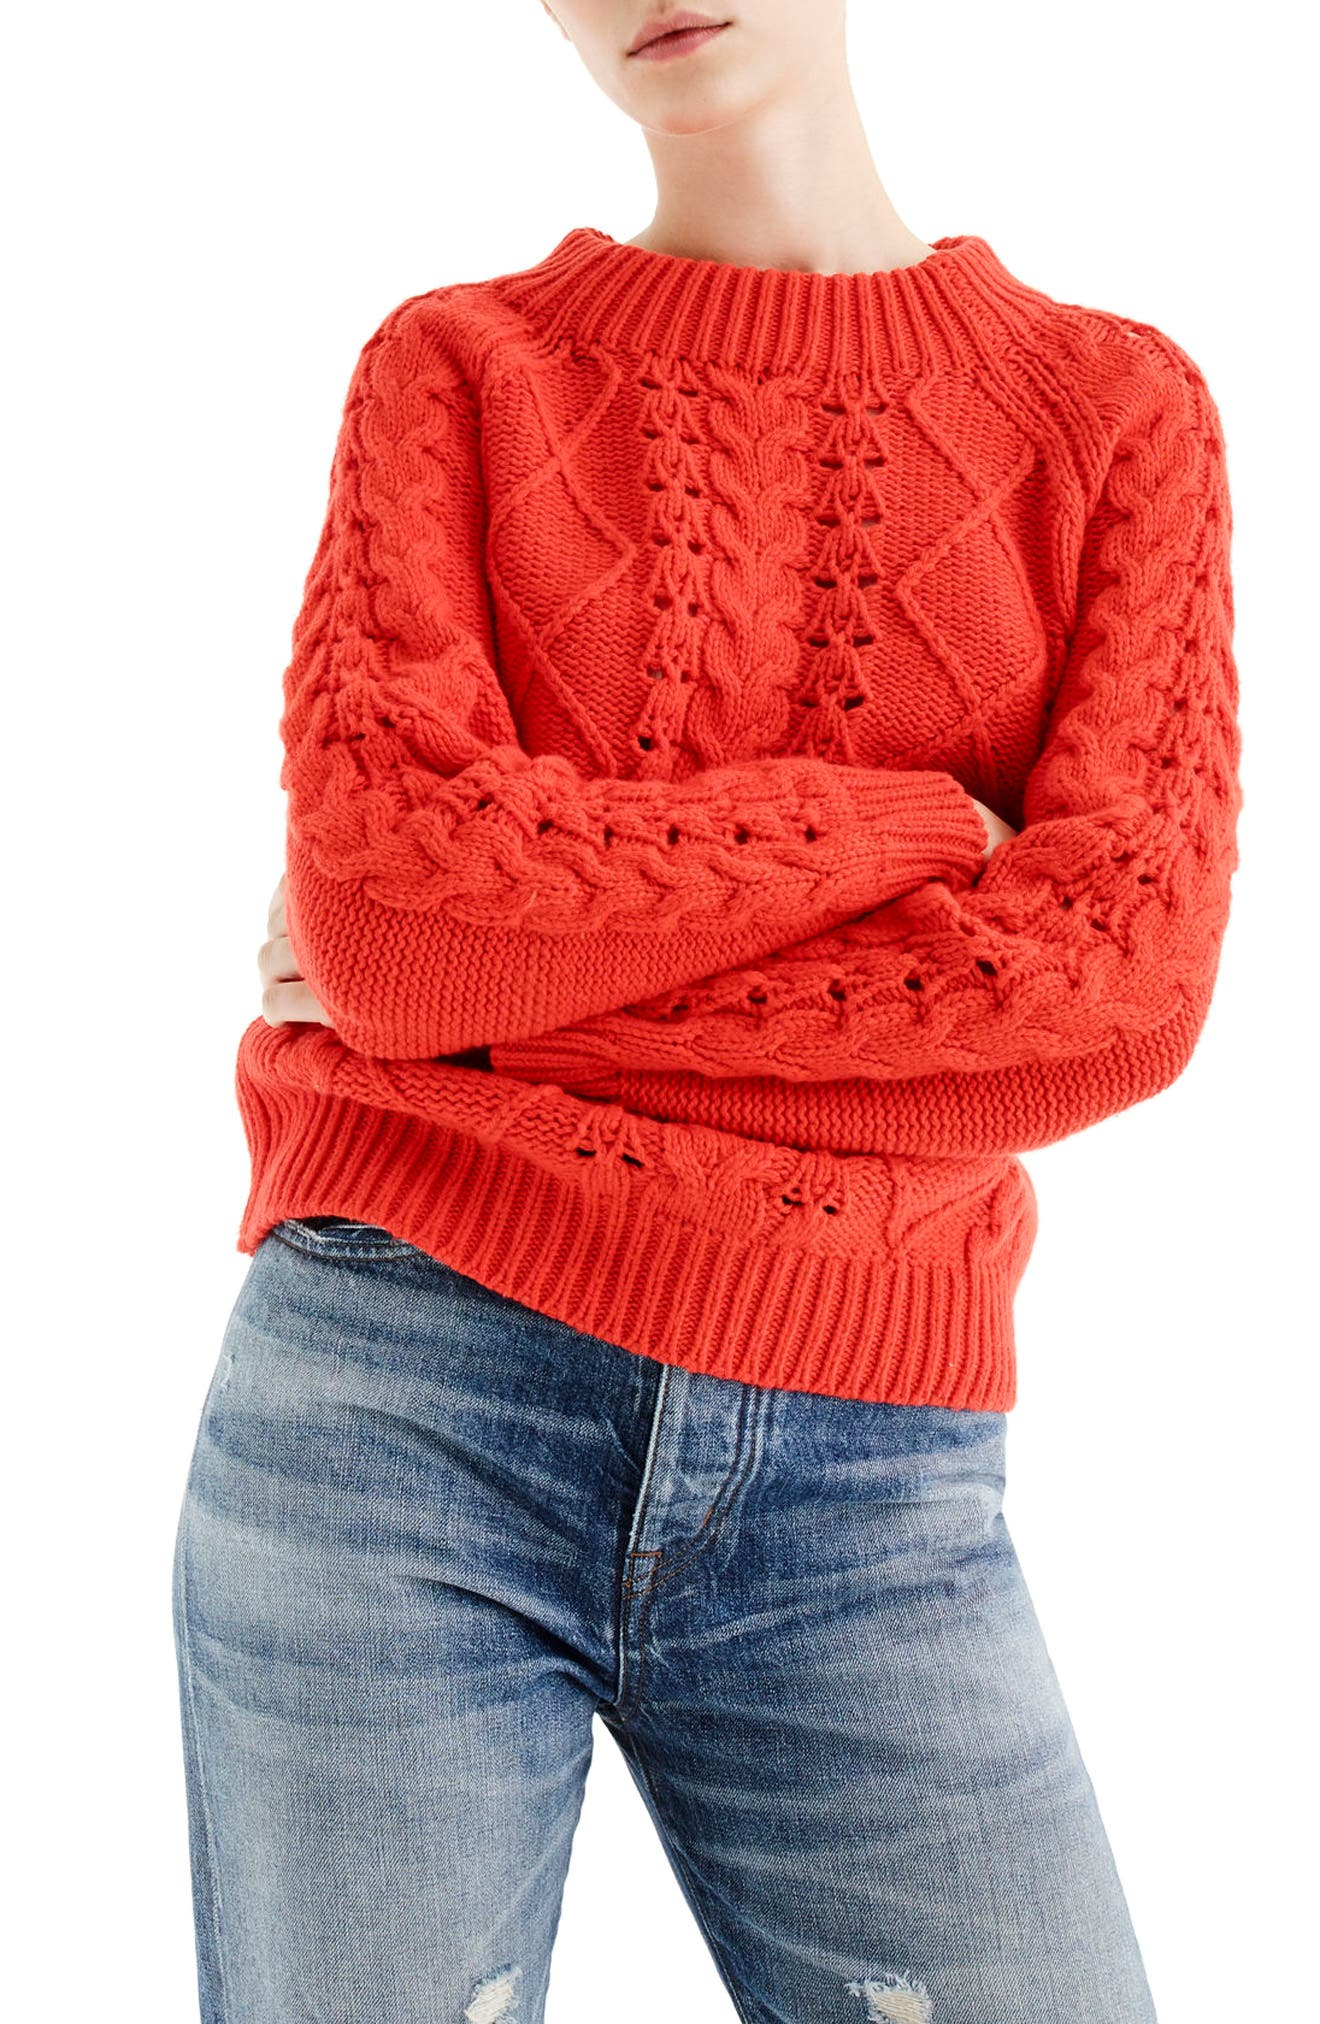 J.Crew Cable Knit Mock Neck Sweater,                         Main,                         color, Vibrant Flame